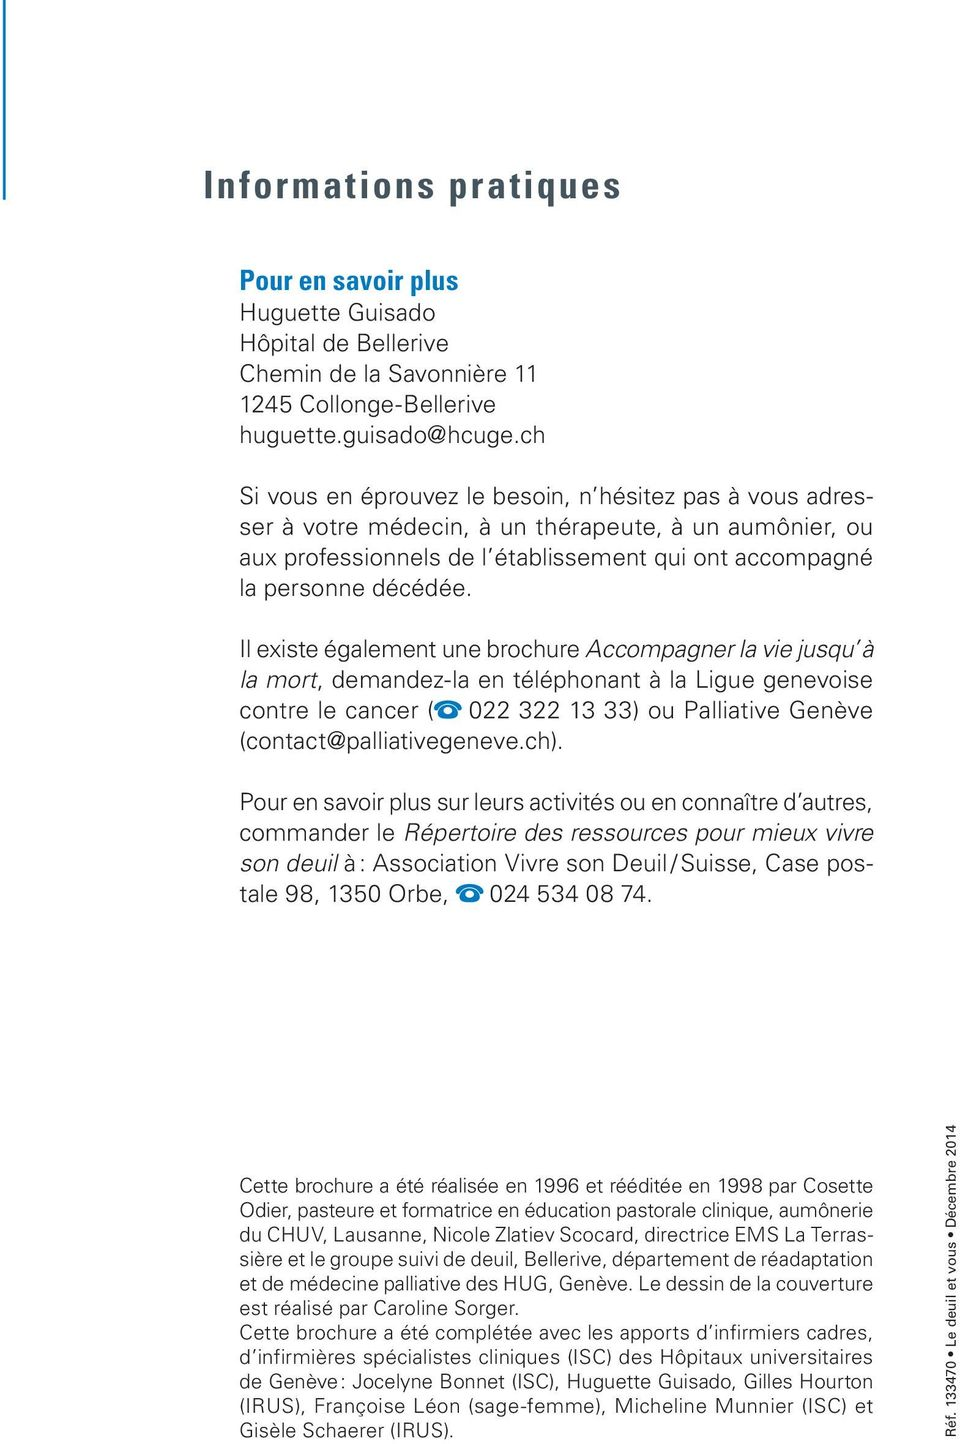 Il existe également une brochure Accompagner la vie jusqu à la mort, demandez-la en téléphonant à la Ligue genevoise contre le cancer ( 022 322 13 33) ou Palliative Genève (contact@palliativegeneve.